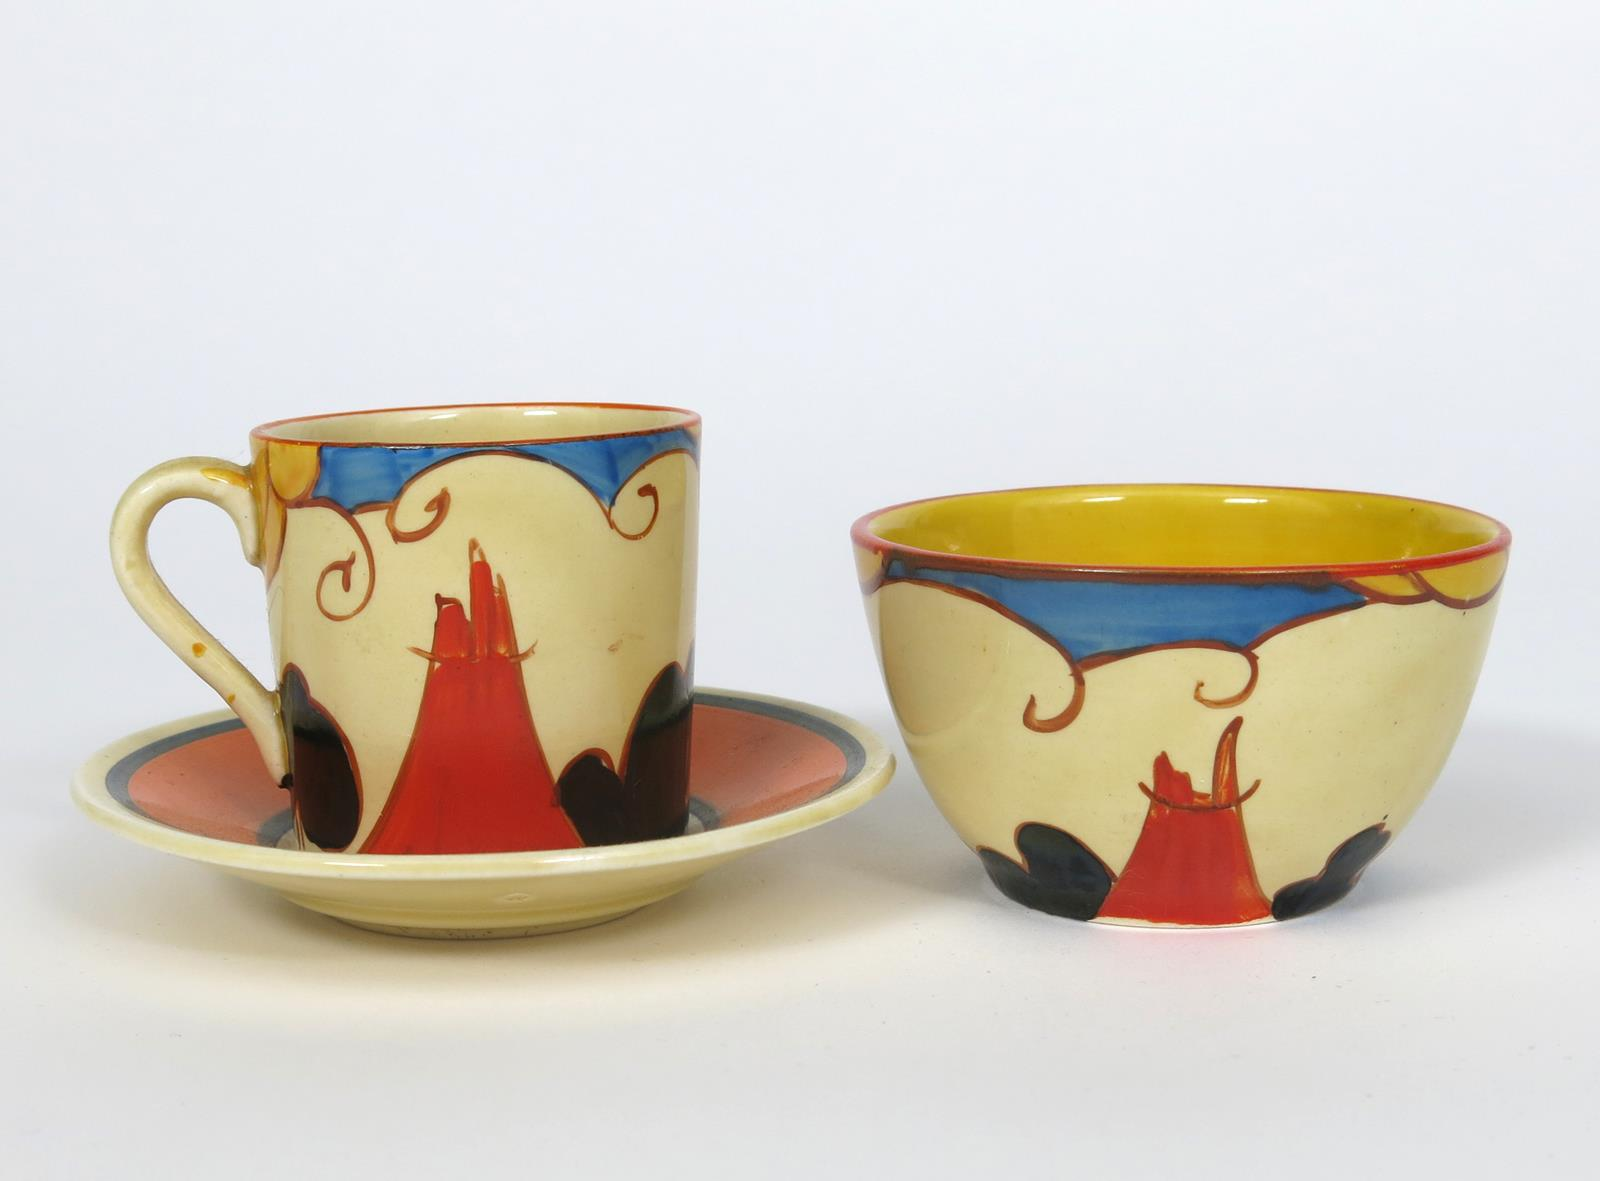 'Summerhouse' a Clarice Cliff Fantasque Bizarre Tankard coffee can and saucer and en suite sugar